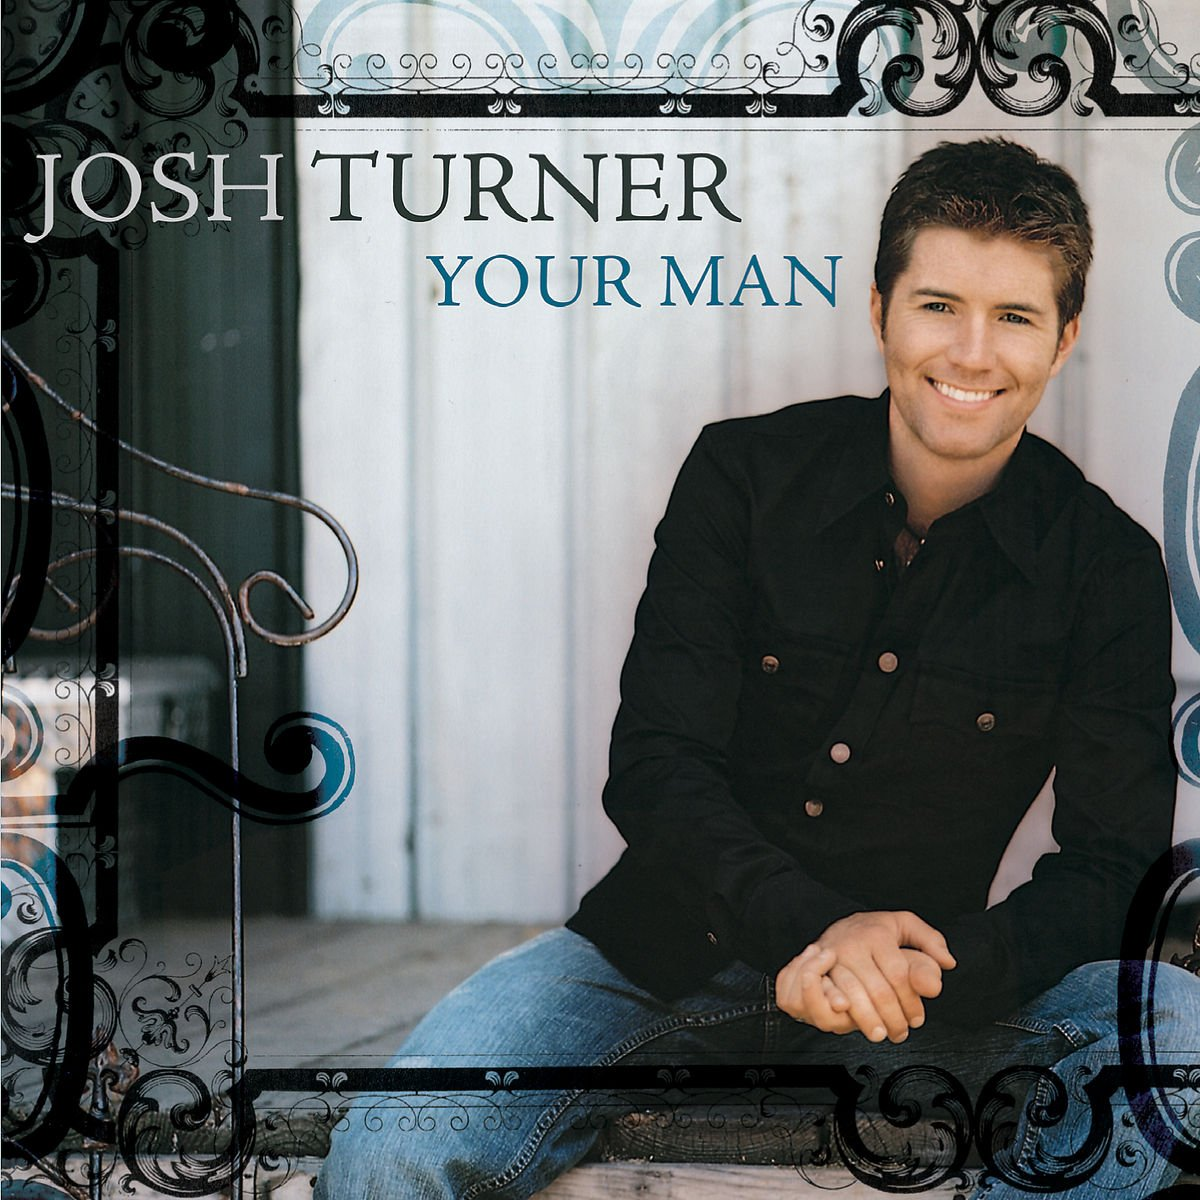 Josh Turner - Your Man (2006) [FLAC] Download